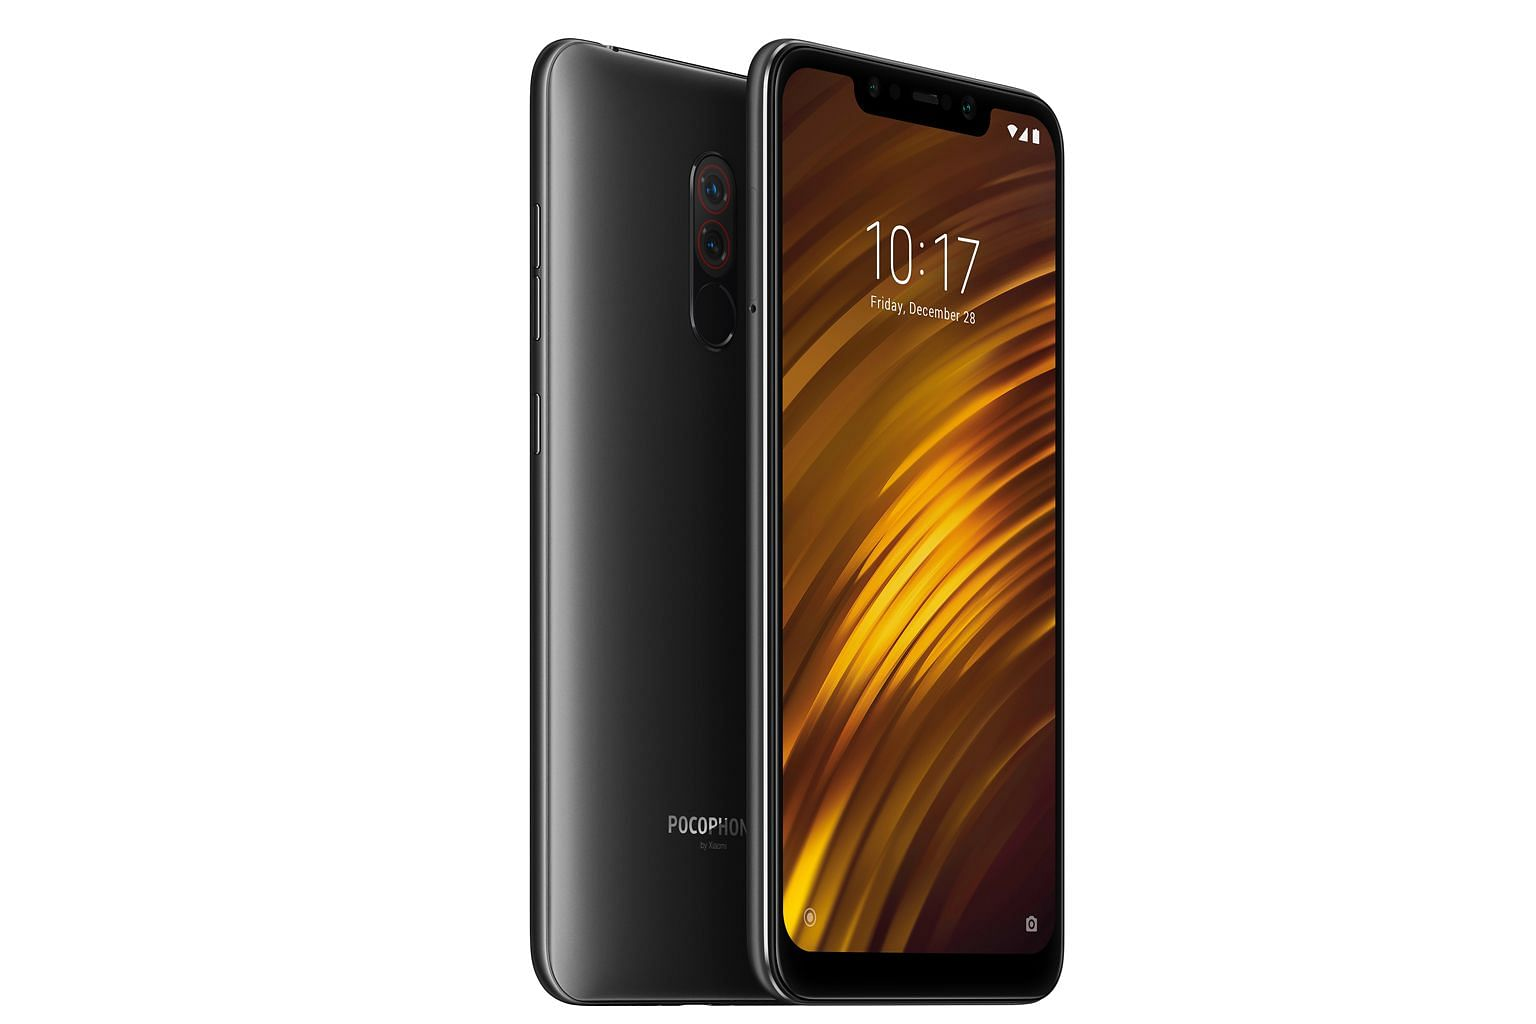 The Xiaomi Pocophone F1 comes with a 4,000mAh battery.